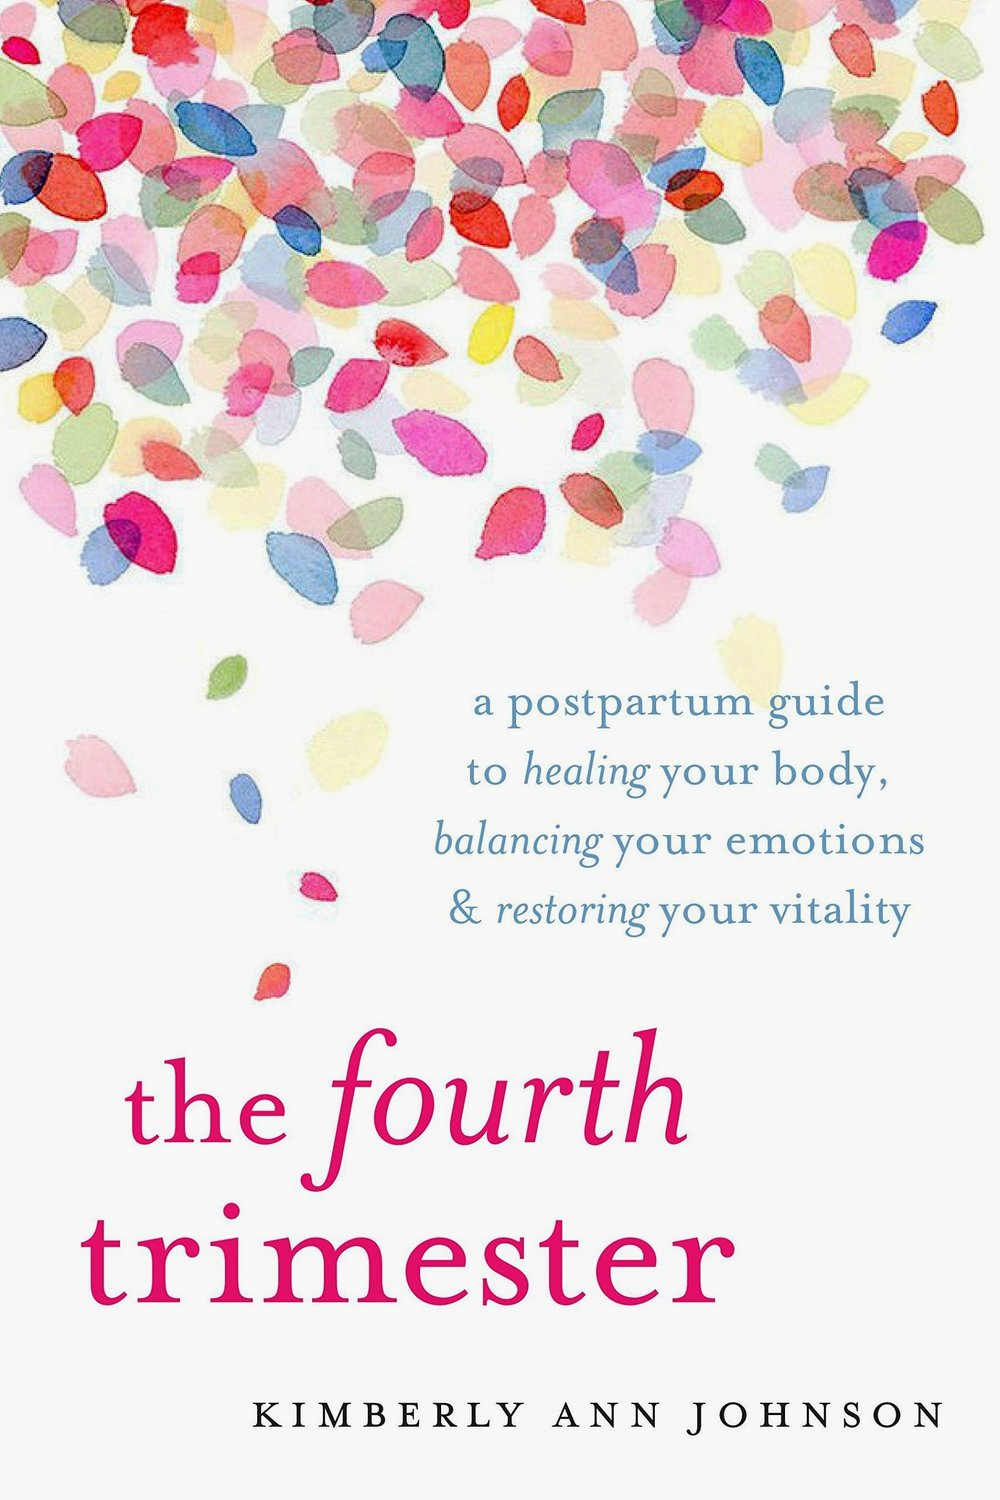 Best Books On Motherhood - The Fourth Trimester by Kimberly Ann Johnson